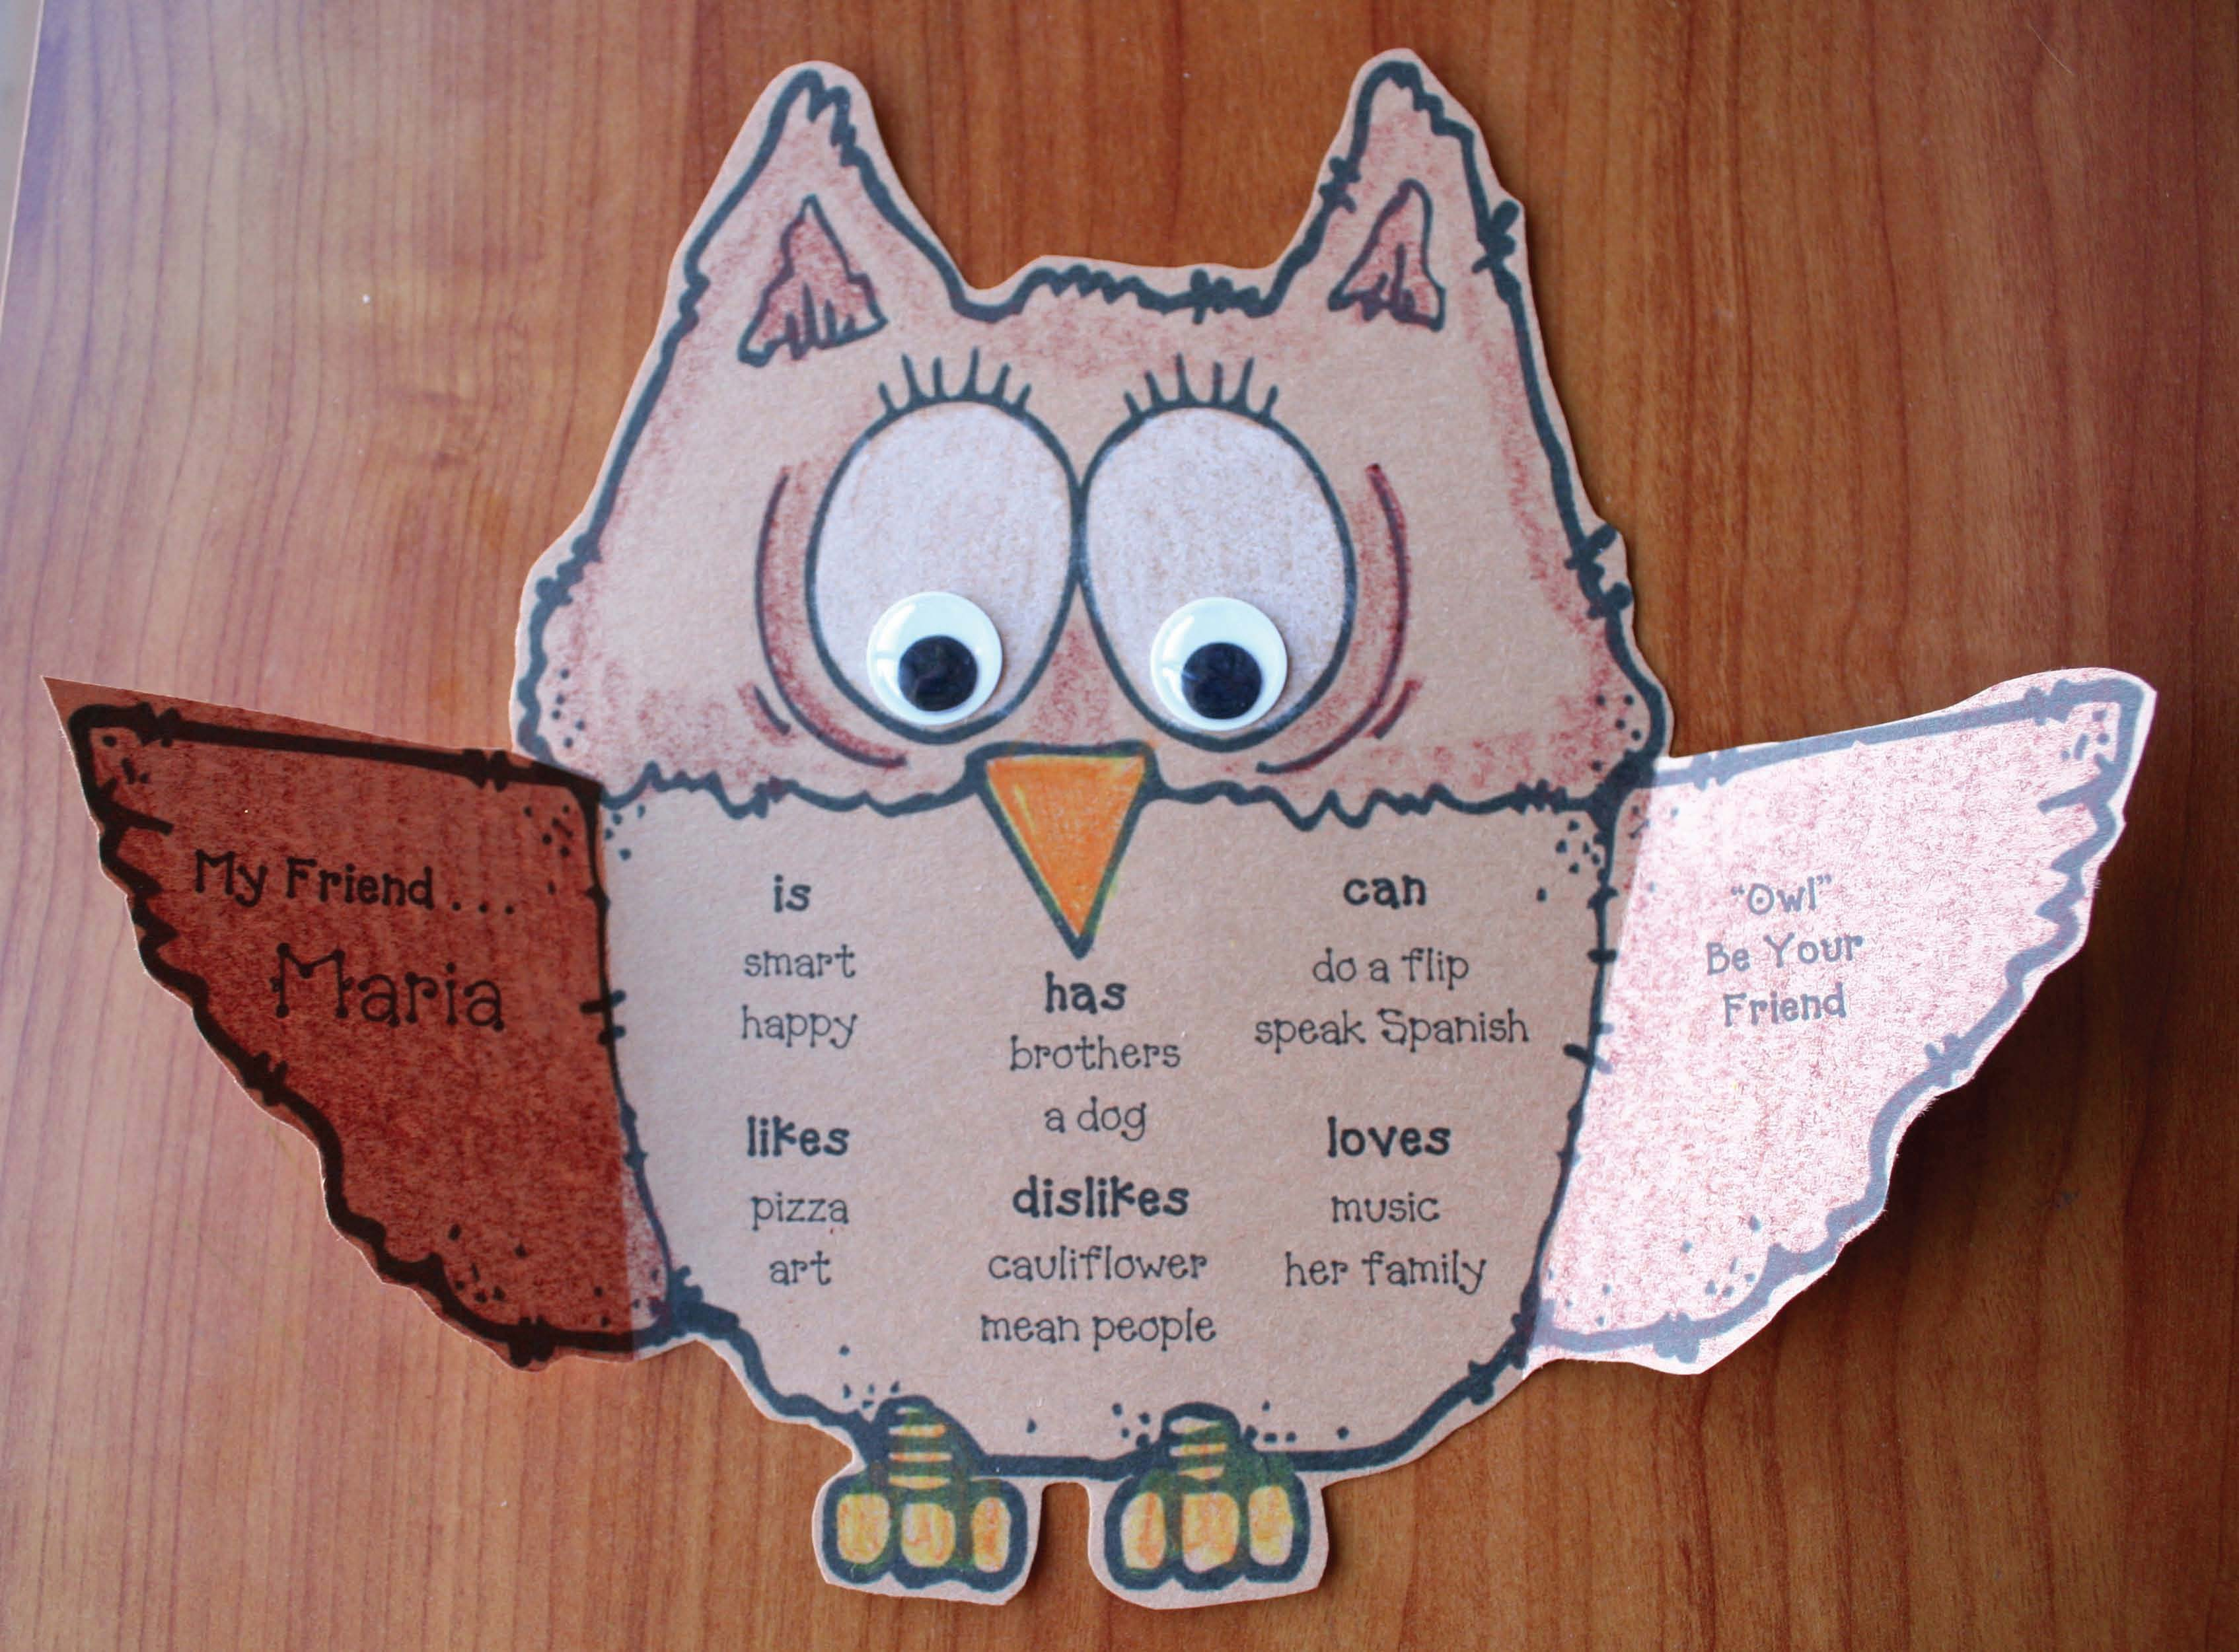 getting to know you activities, icebreakers for school, back to school bulletin board activities, back to school crafts